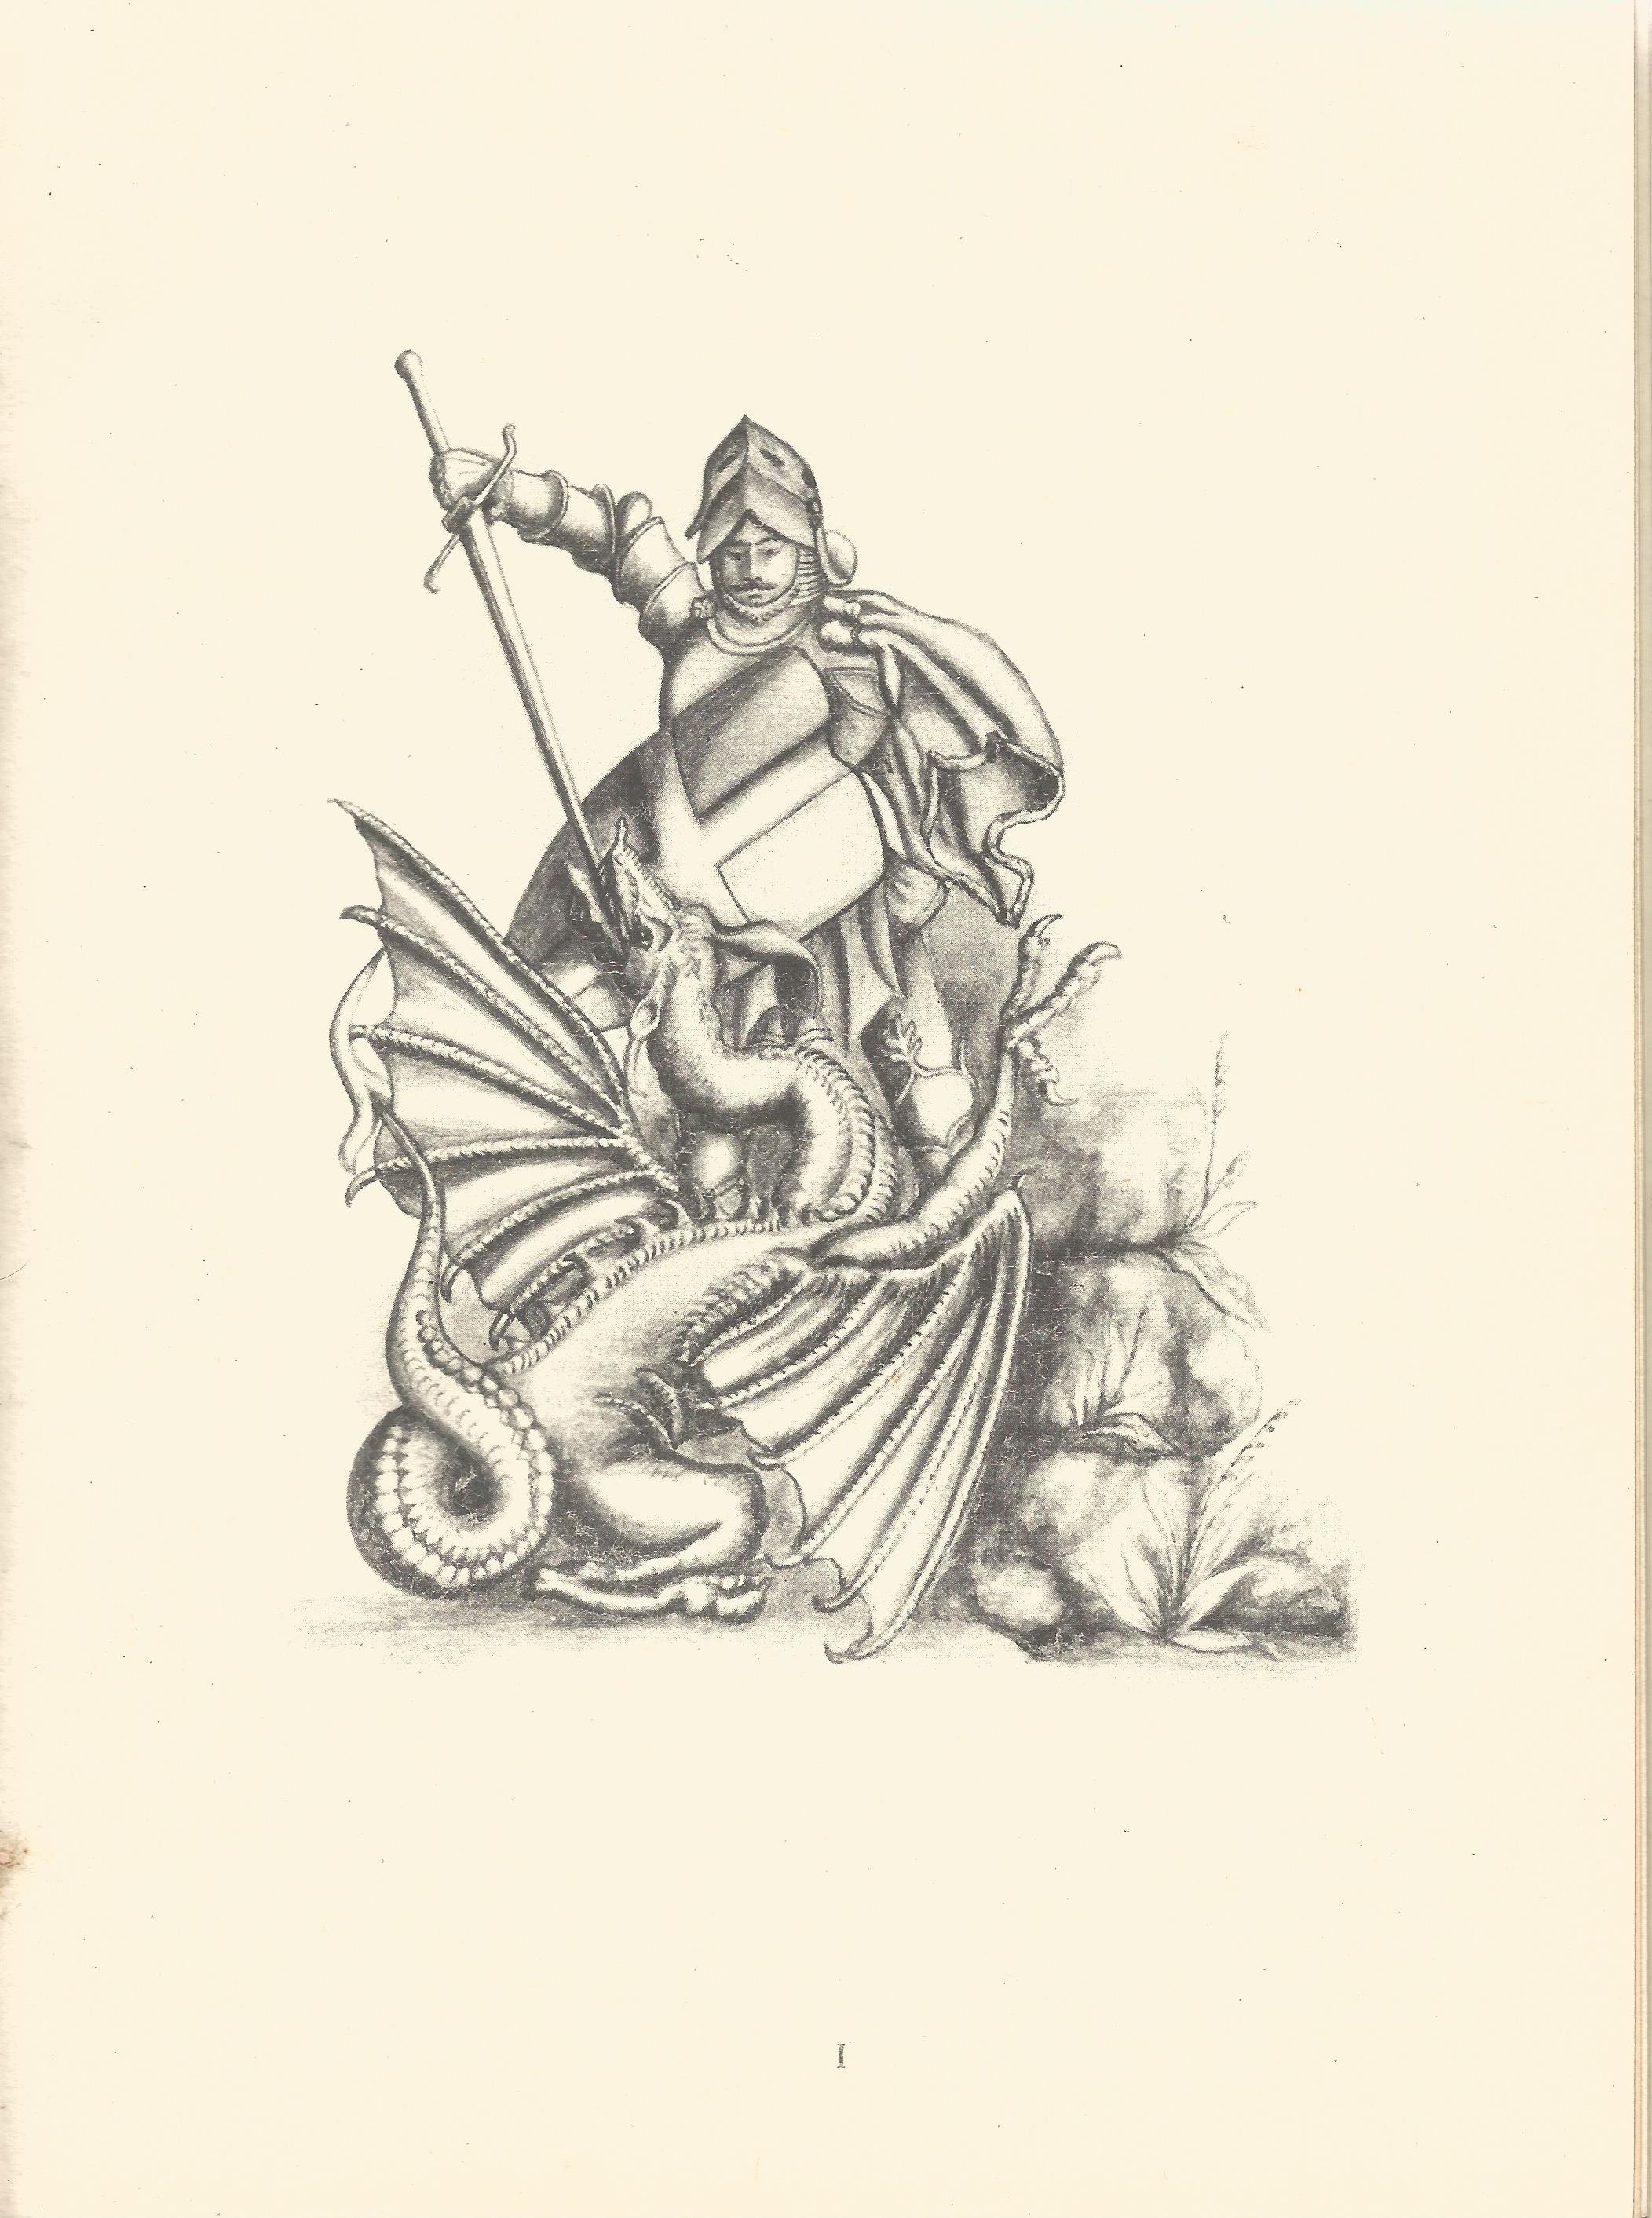 Autograph Album with Printed Pencil Drawings George & Dragon, Heraldic Emblems, Building & Masonic - Image 5 of 8